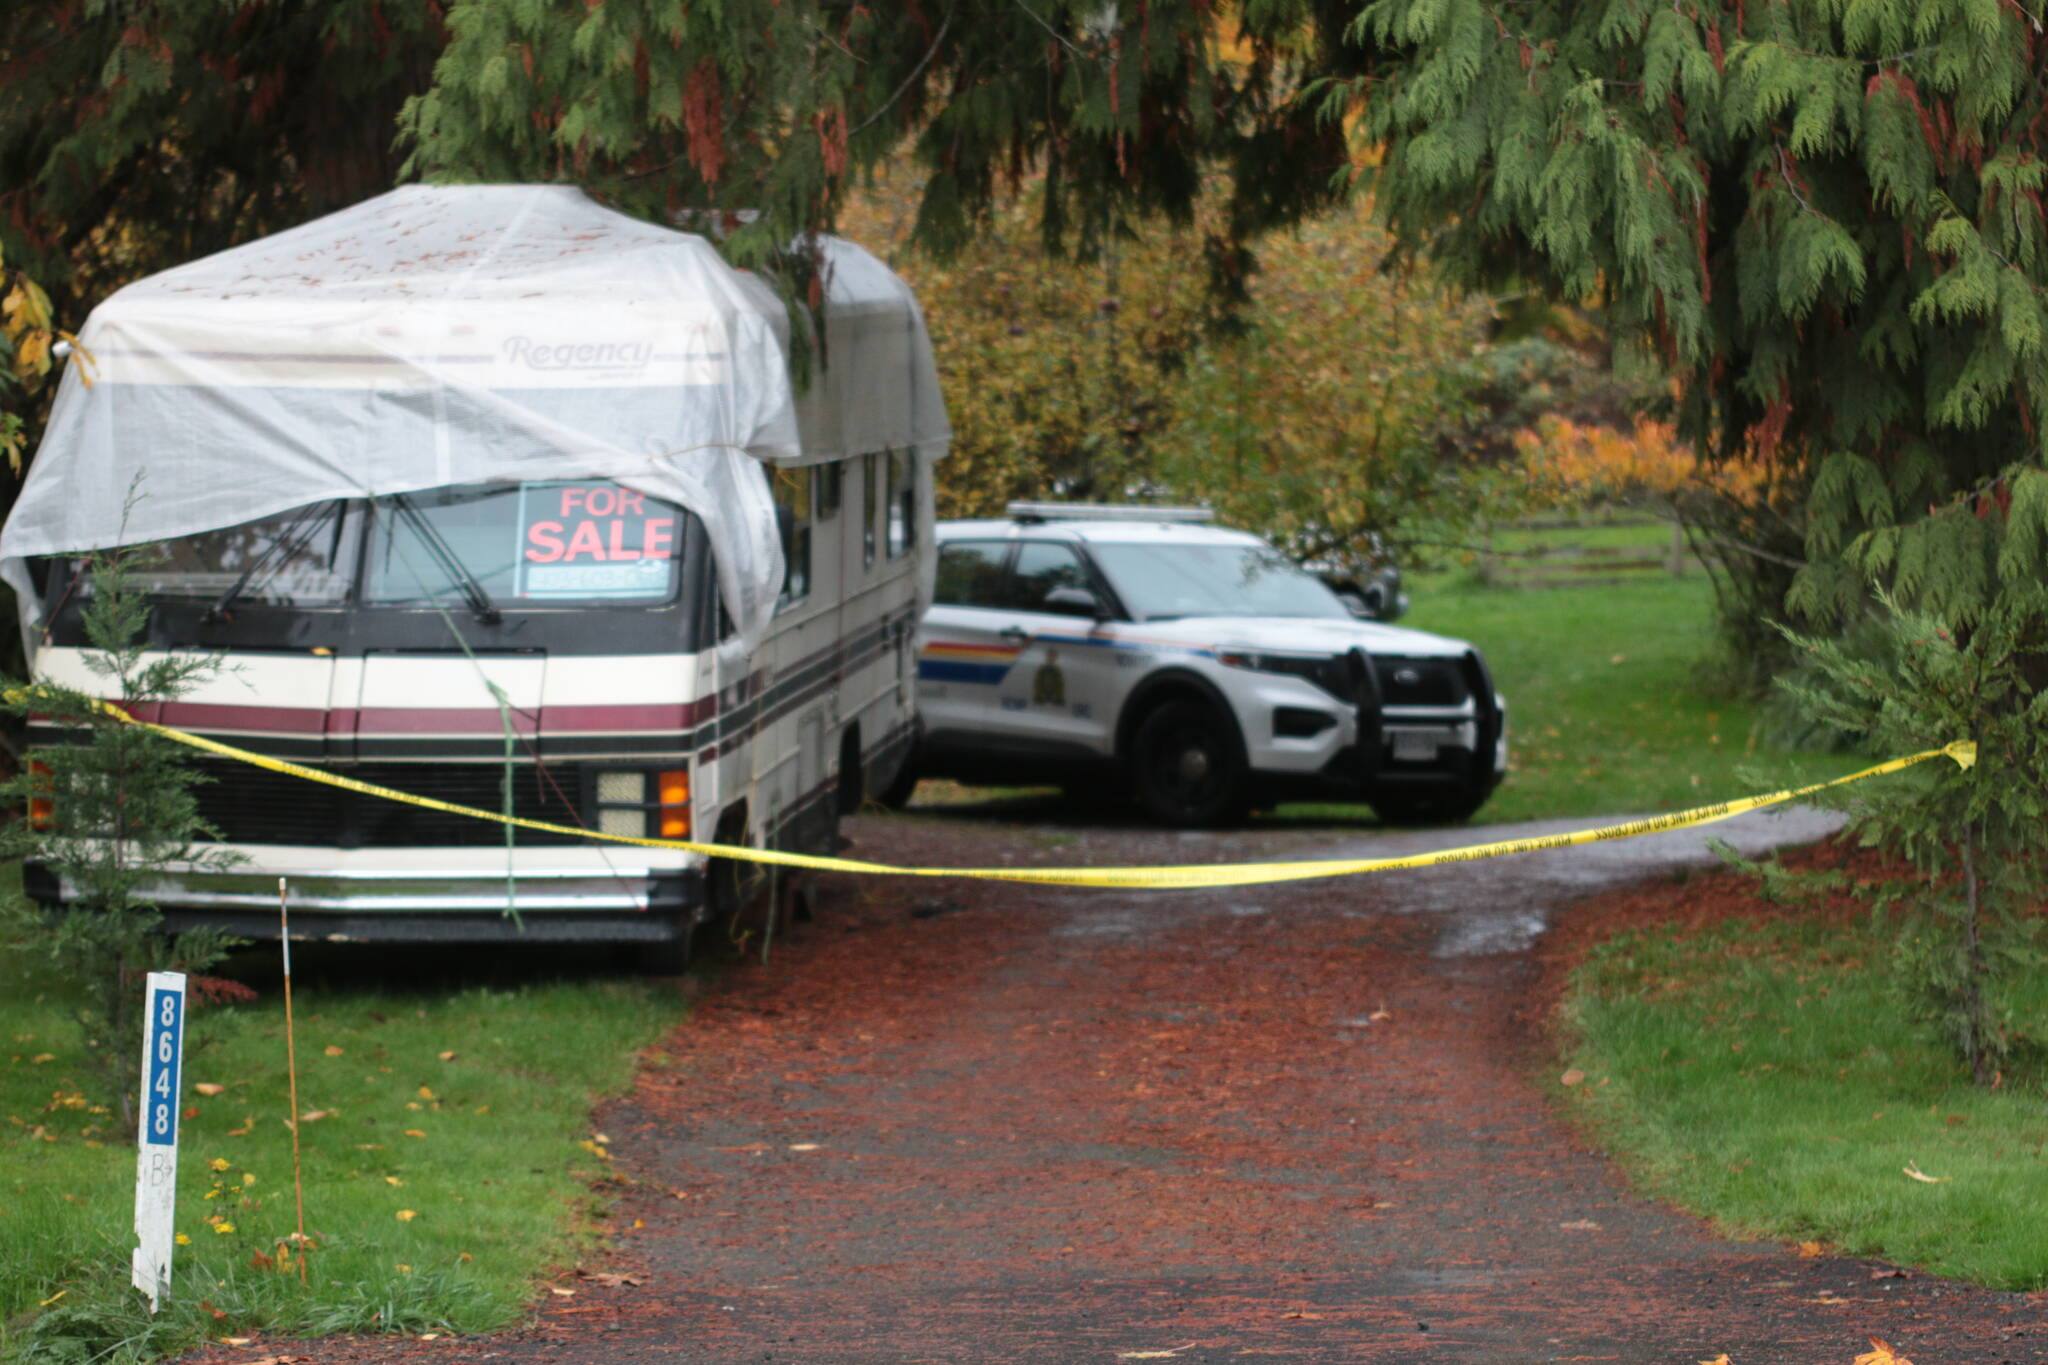 Police are investigating an alleged double homicide in Crofton. (Kevin Rothbauer/Citizen)